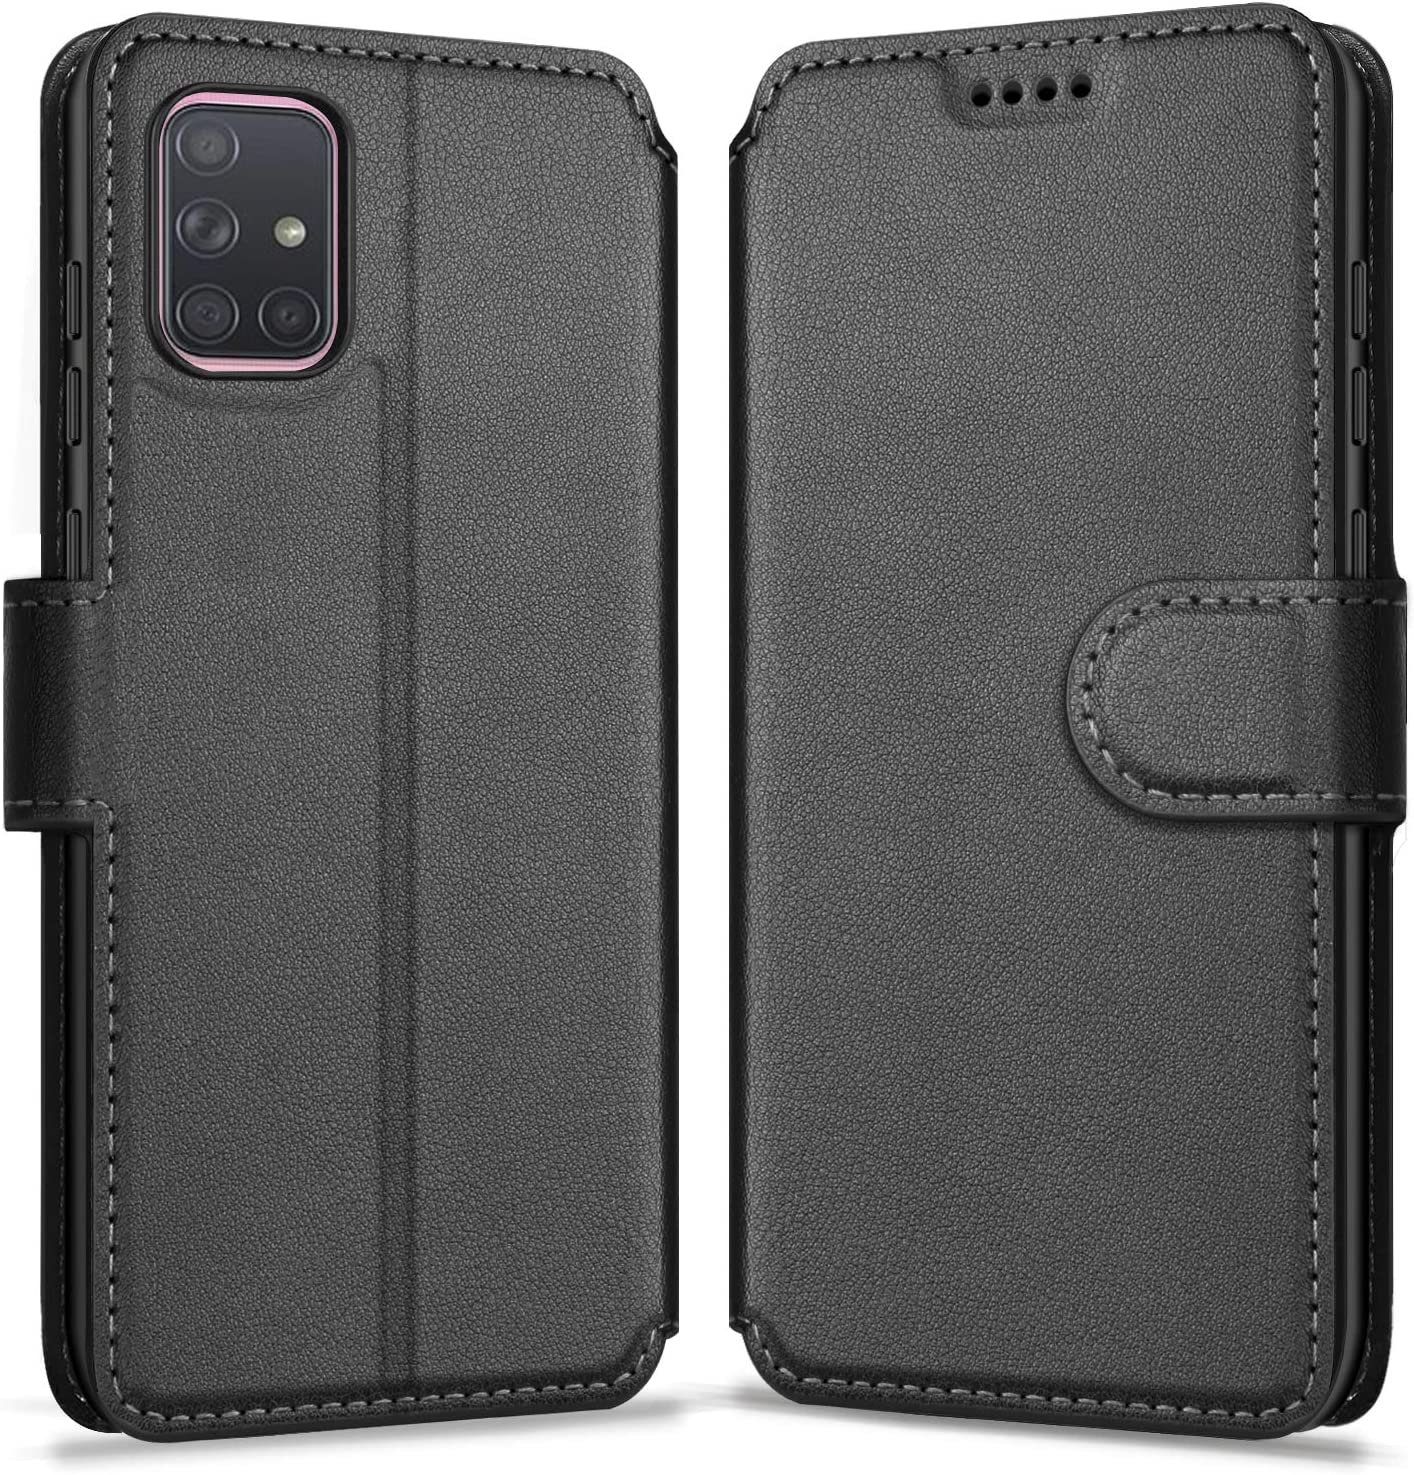 ykooe Phone Case Compatible with Samsung Galaxy A71 (4G Version), PU Leather Protective Phone Cover for Samsung Galaxy A71 Flip Case, Black